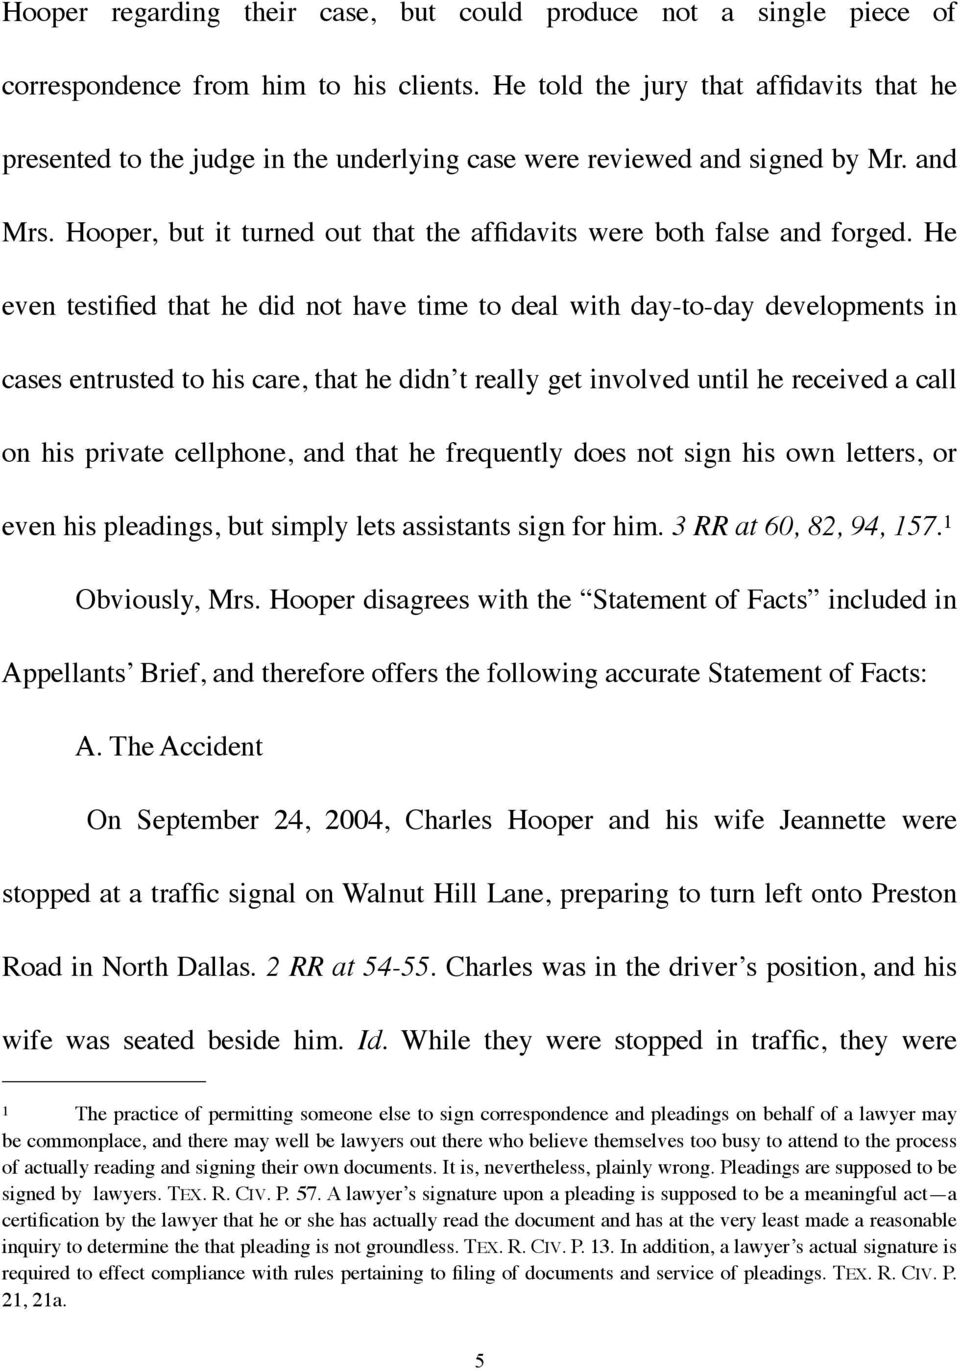 Hooper, but it turned out that the affidavits were both false and forged.